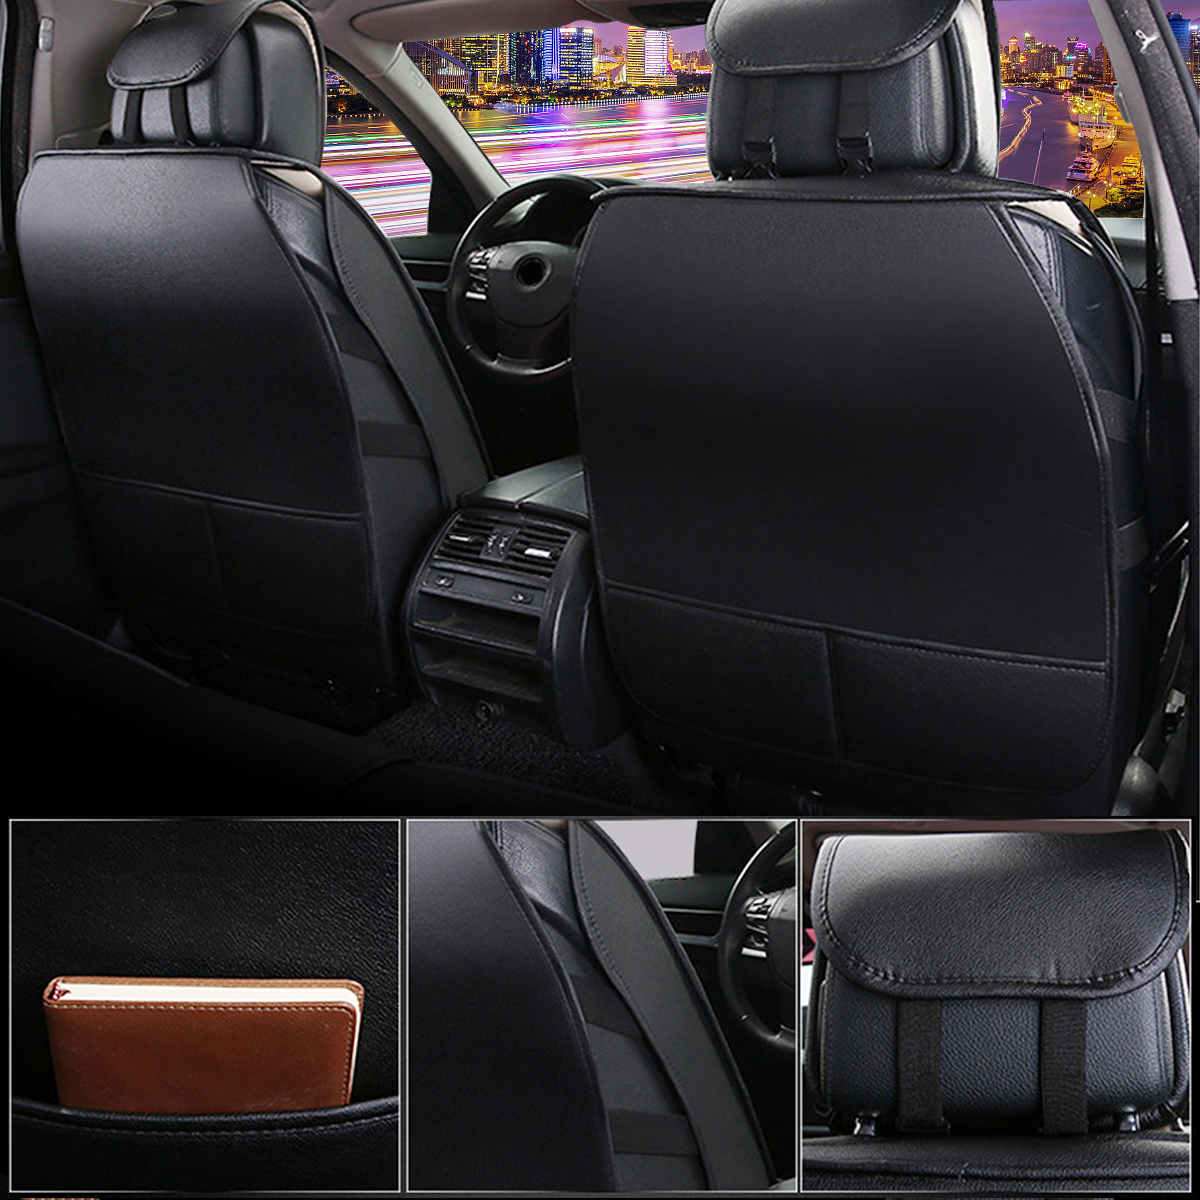 13PCS PU Leather Car Seat Cover Full Set Front Rear with Pillow Waist Cushion Universal for 5-Seats